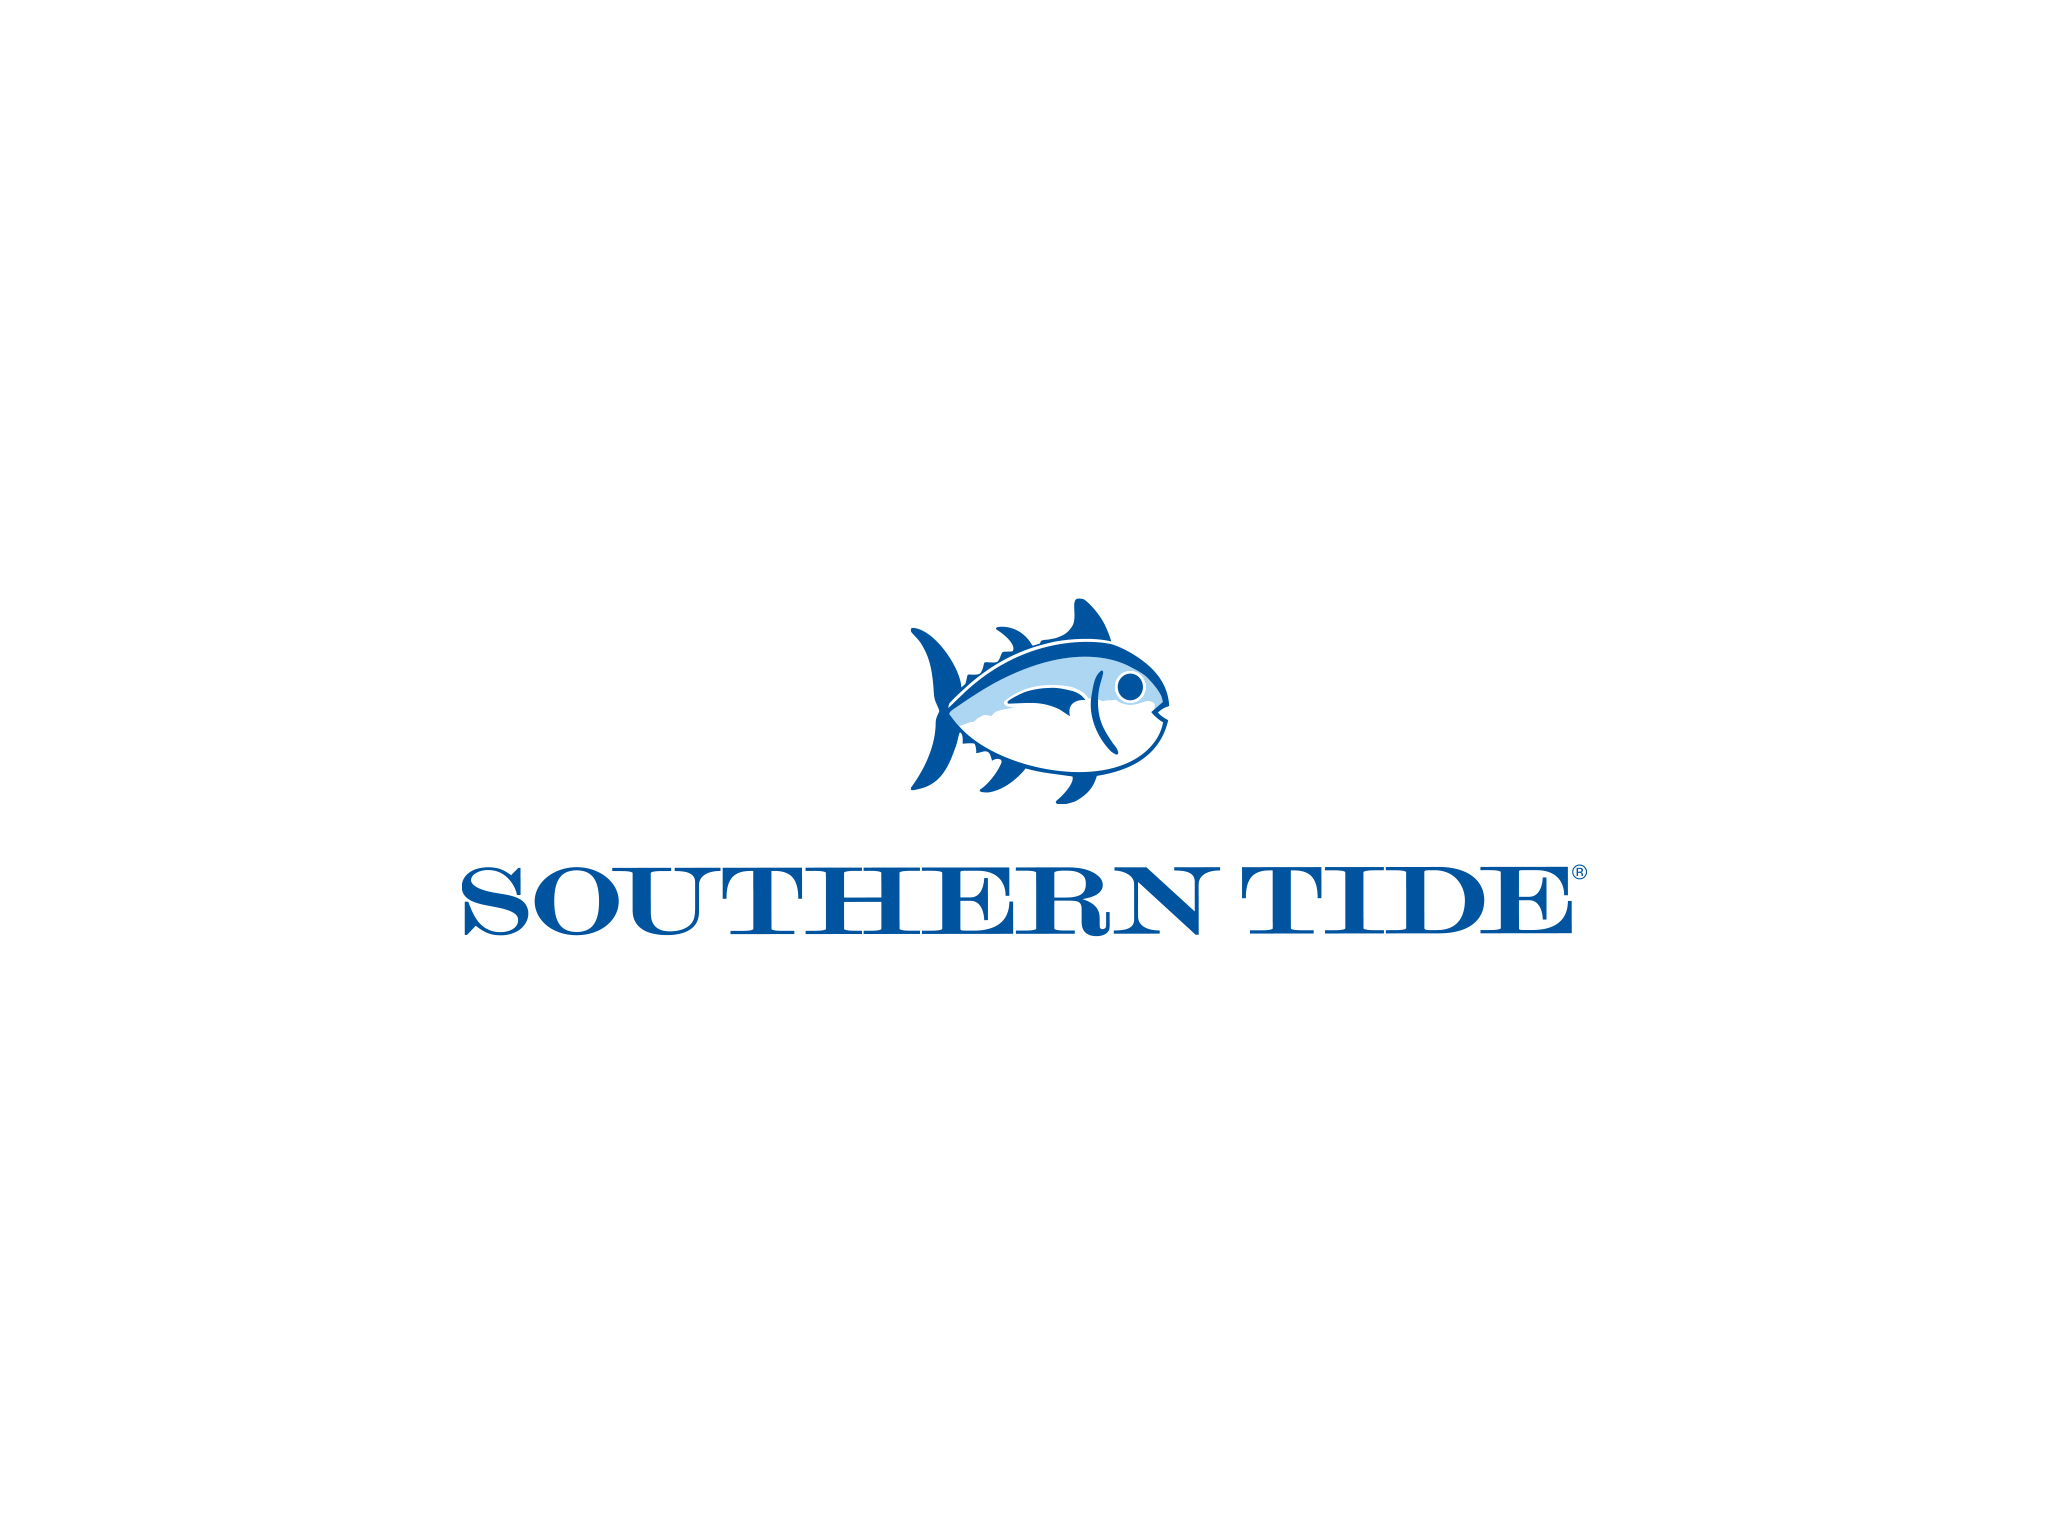 Southern Tide Wallpaper